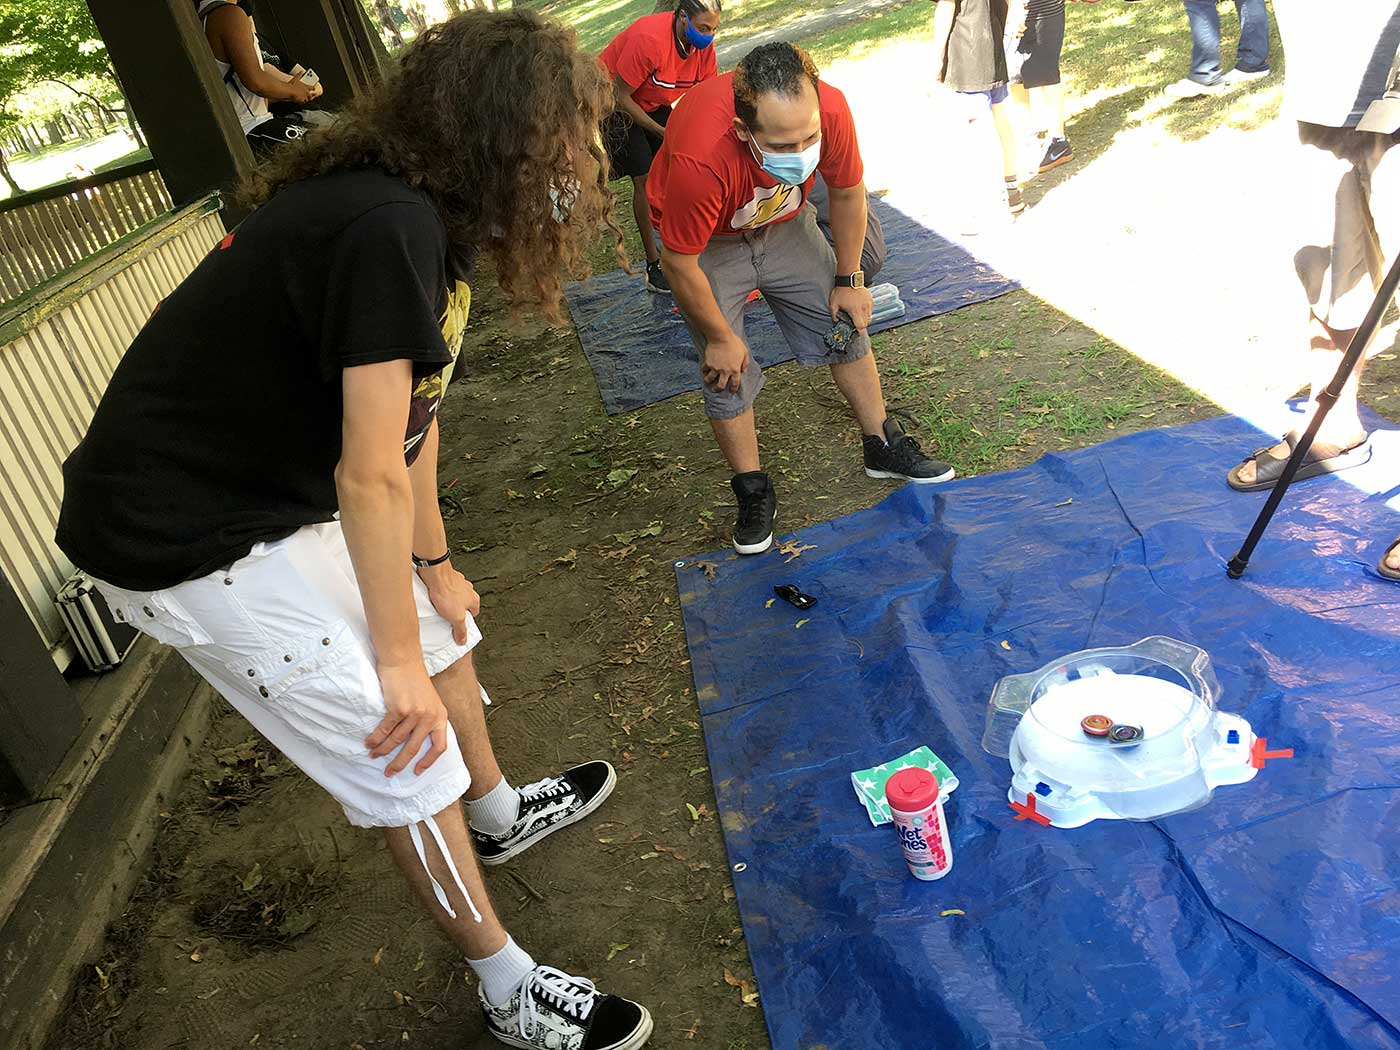 judge and player observing beyblades in stadium at outdoor beyblade tournament